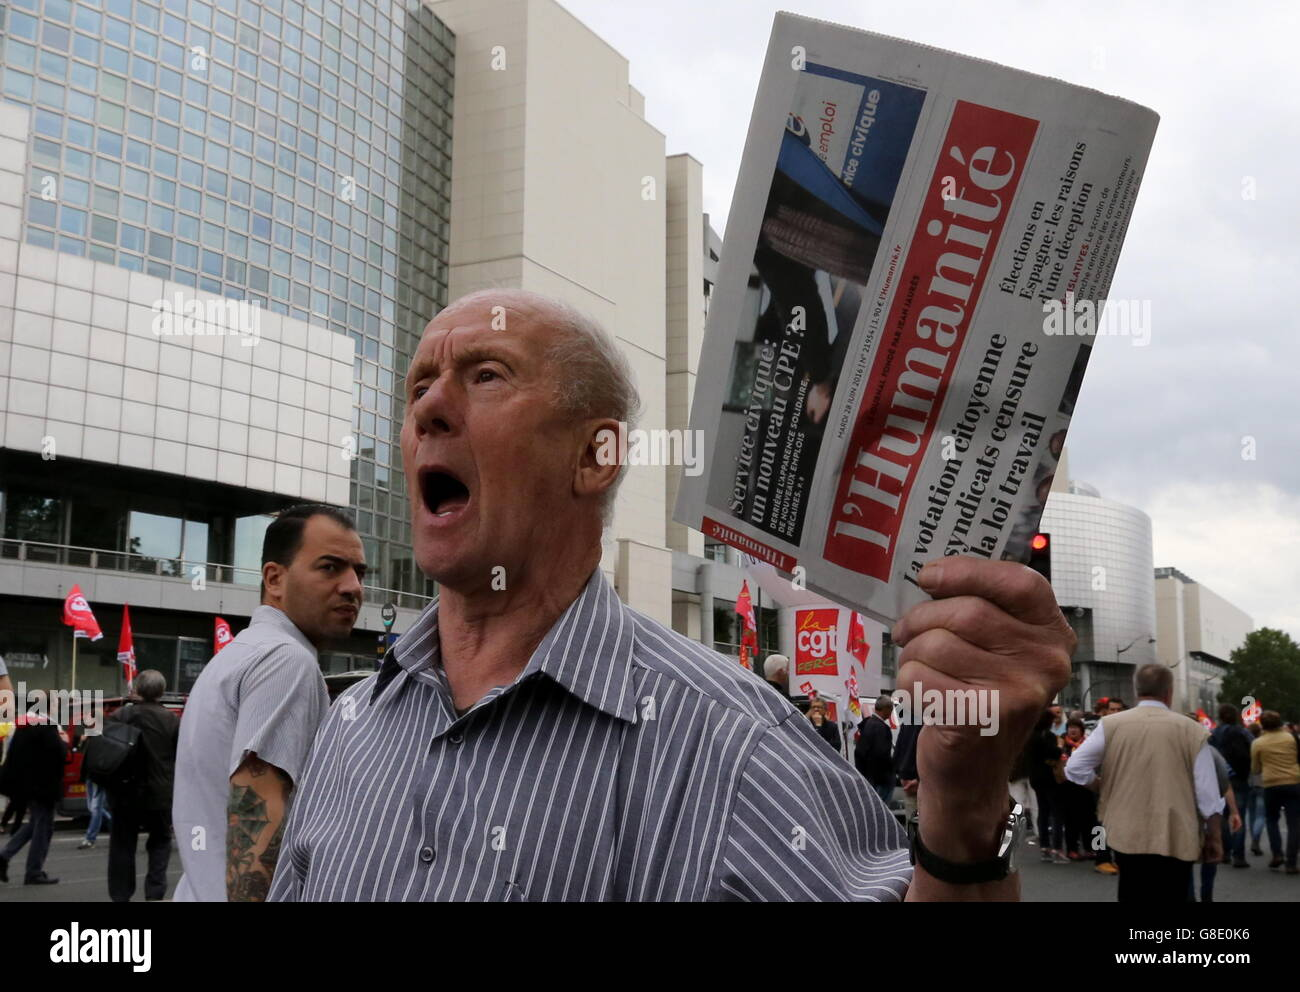 Paris, France. 28th June, 2016. A demonstrator with a copy of L'Humanite shouts slogans during a protest against - Stock Image